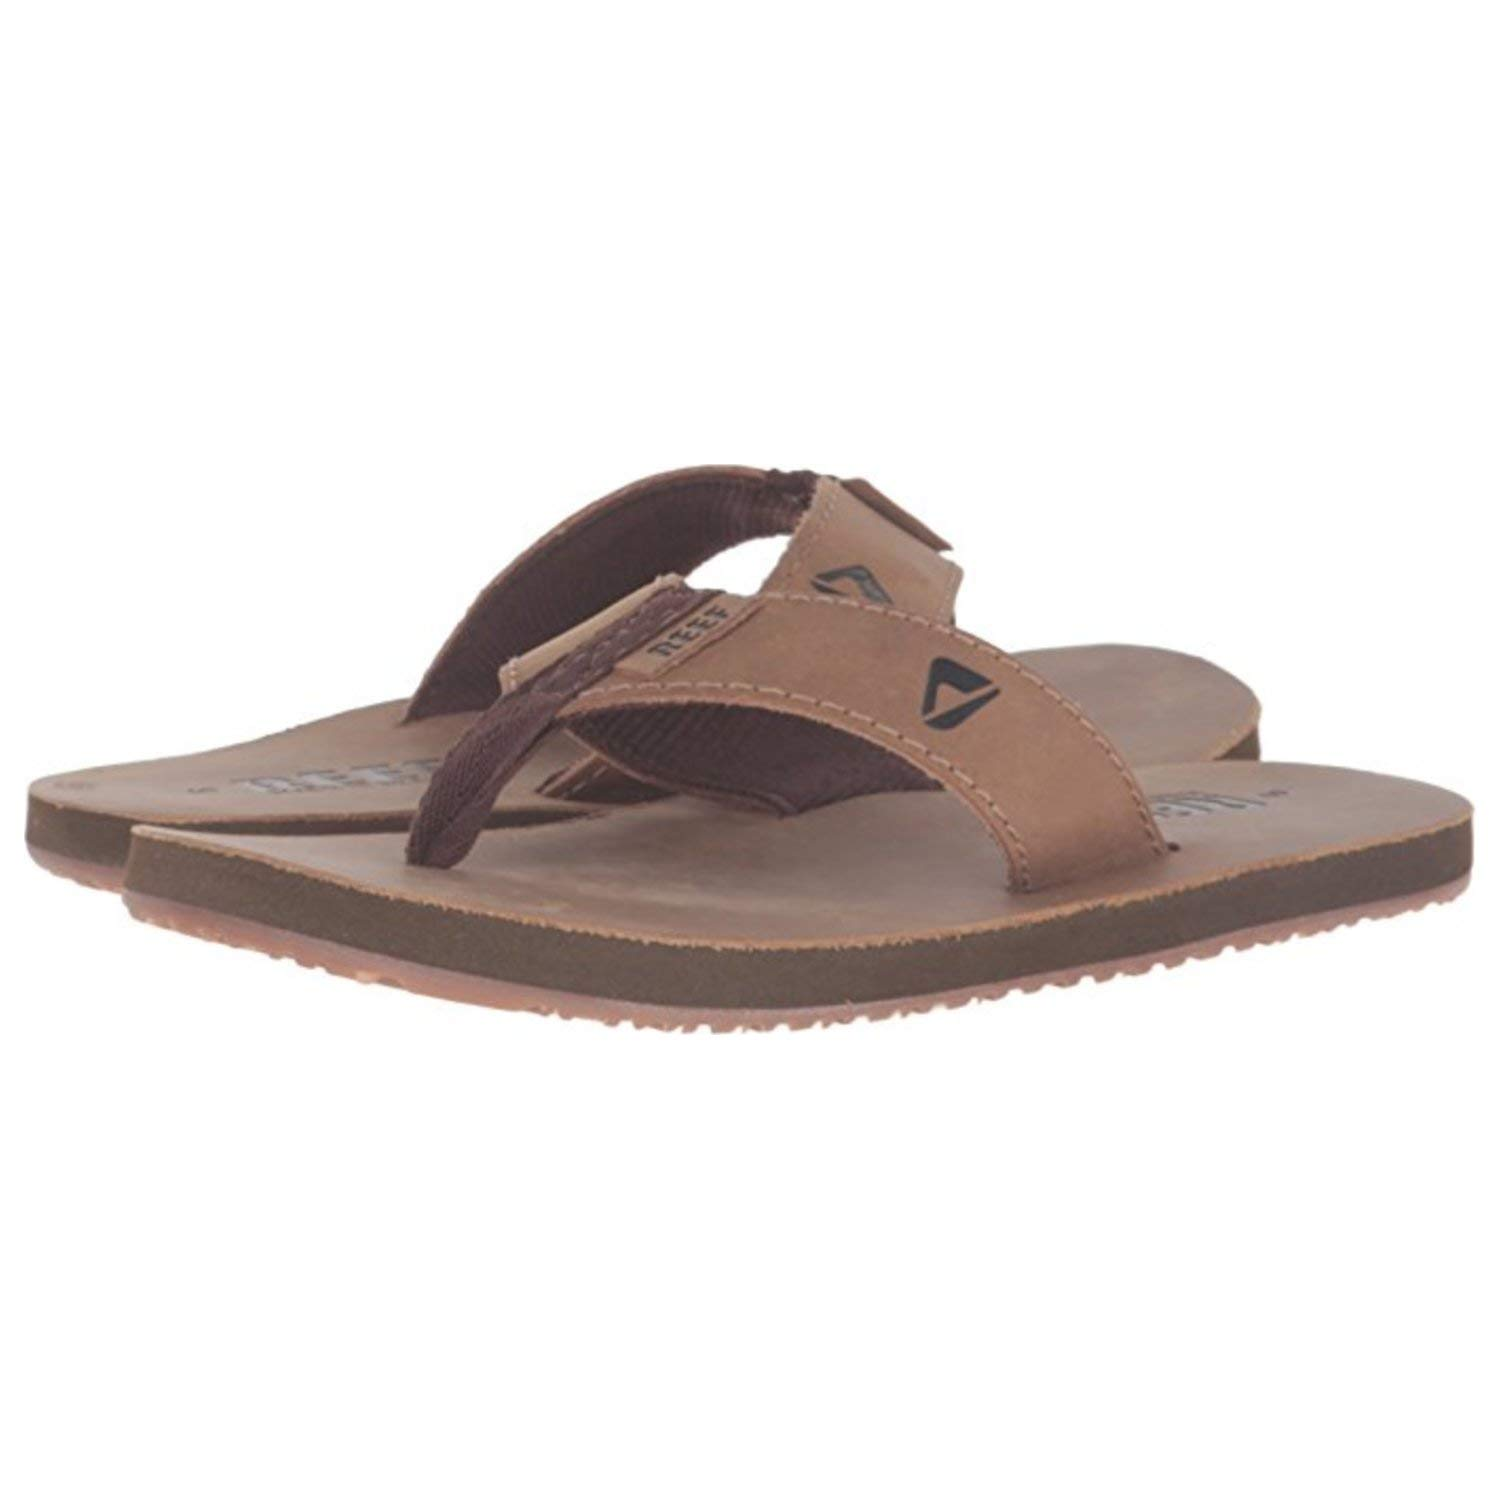 Reef Men's Leather Smoothy, Bronze/Brown, 11 M US